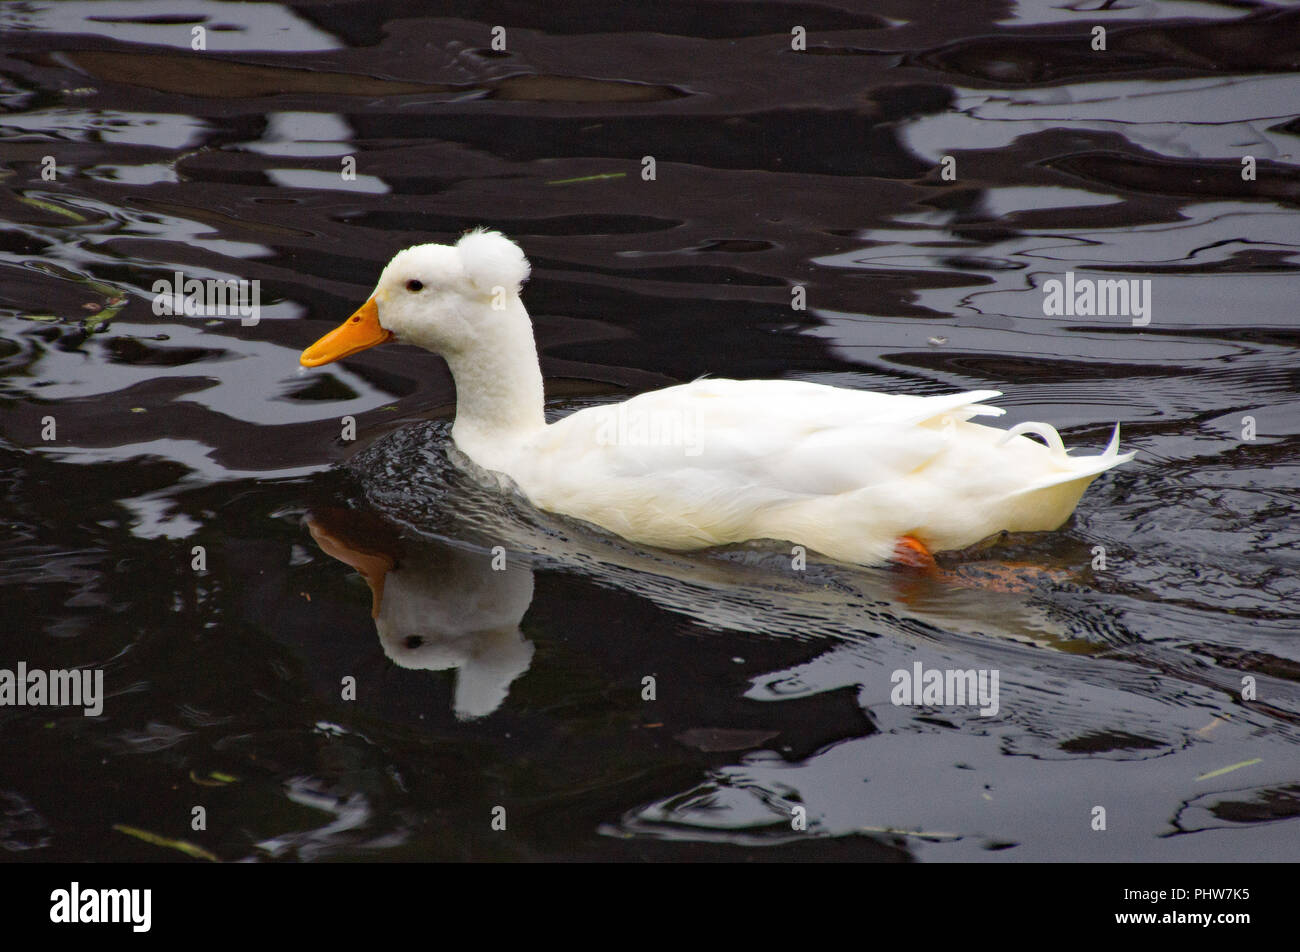 White crested duck, or Anas platyrhynchos domesticus, on River Stort in Sawbridgeworth - Stock Image